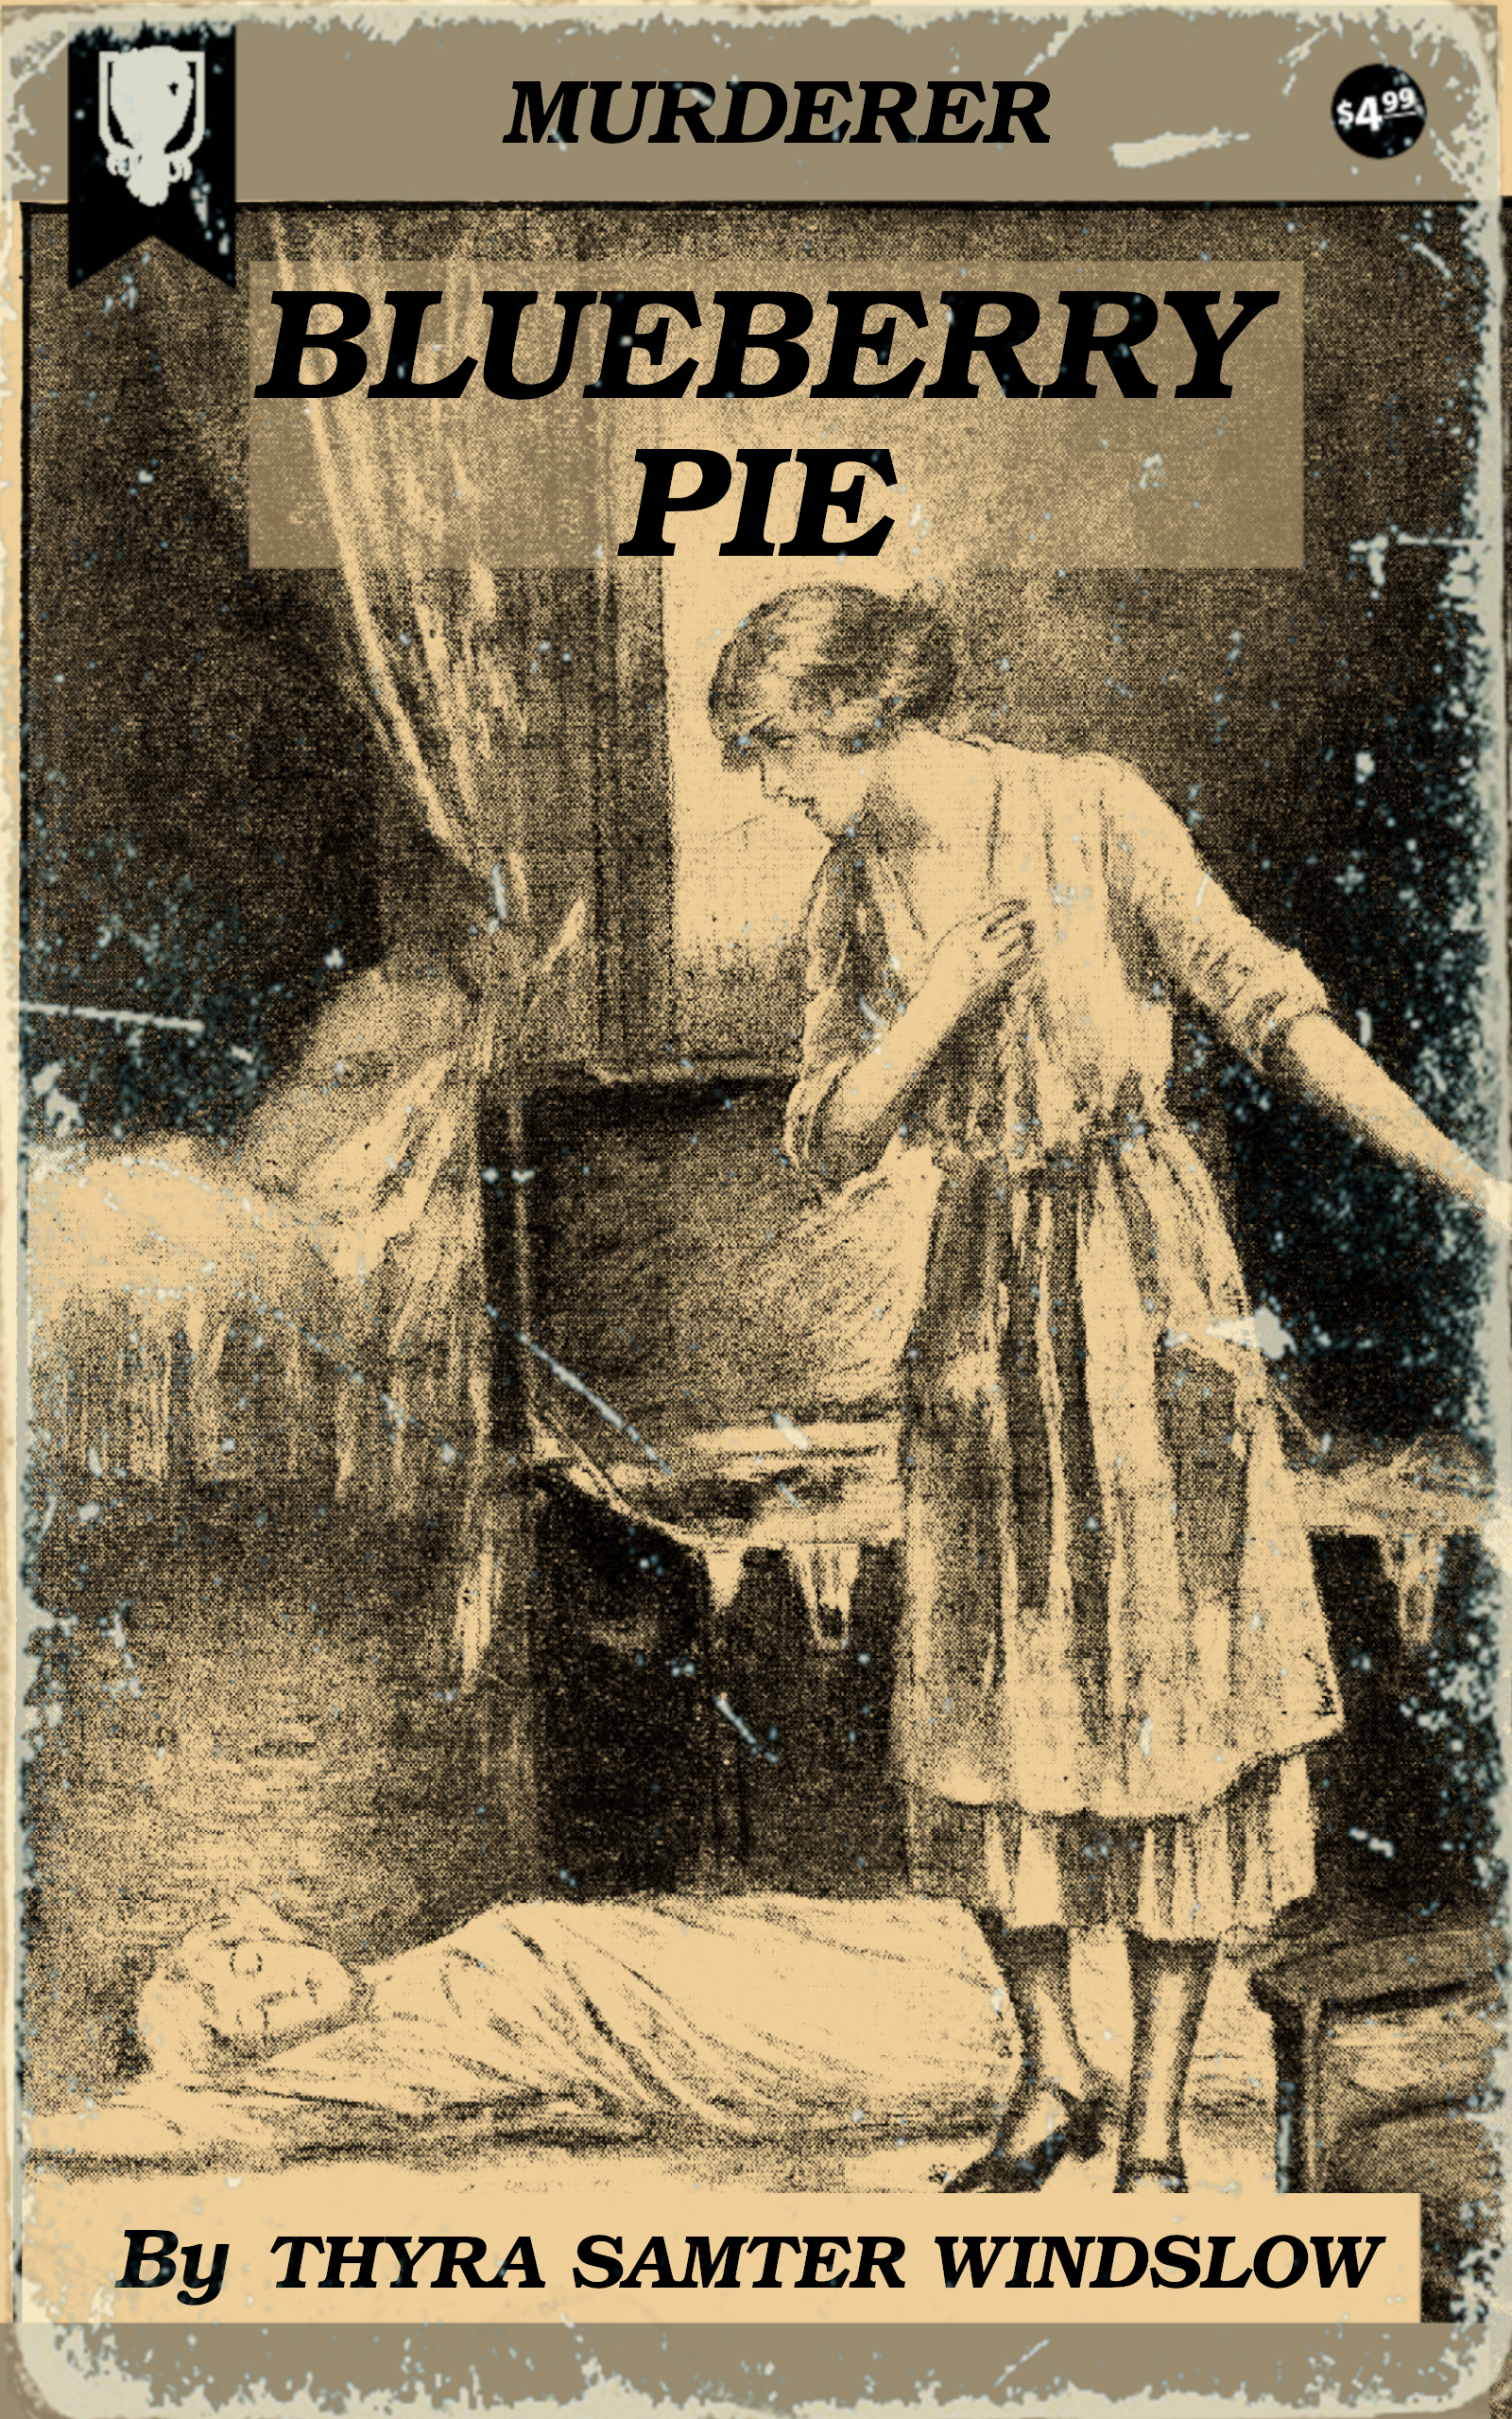 Blueberry Pie, by Thrya Samter Winslow